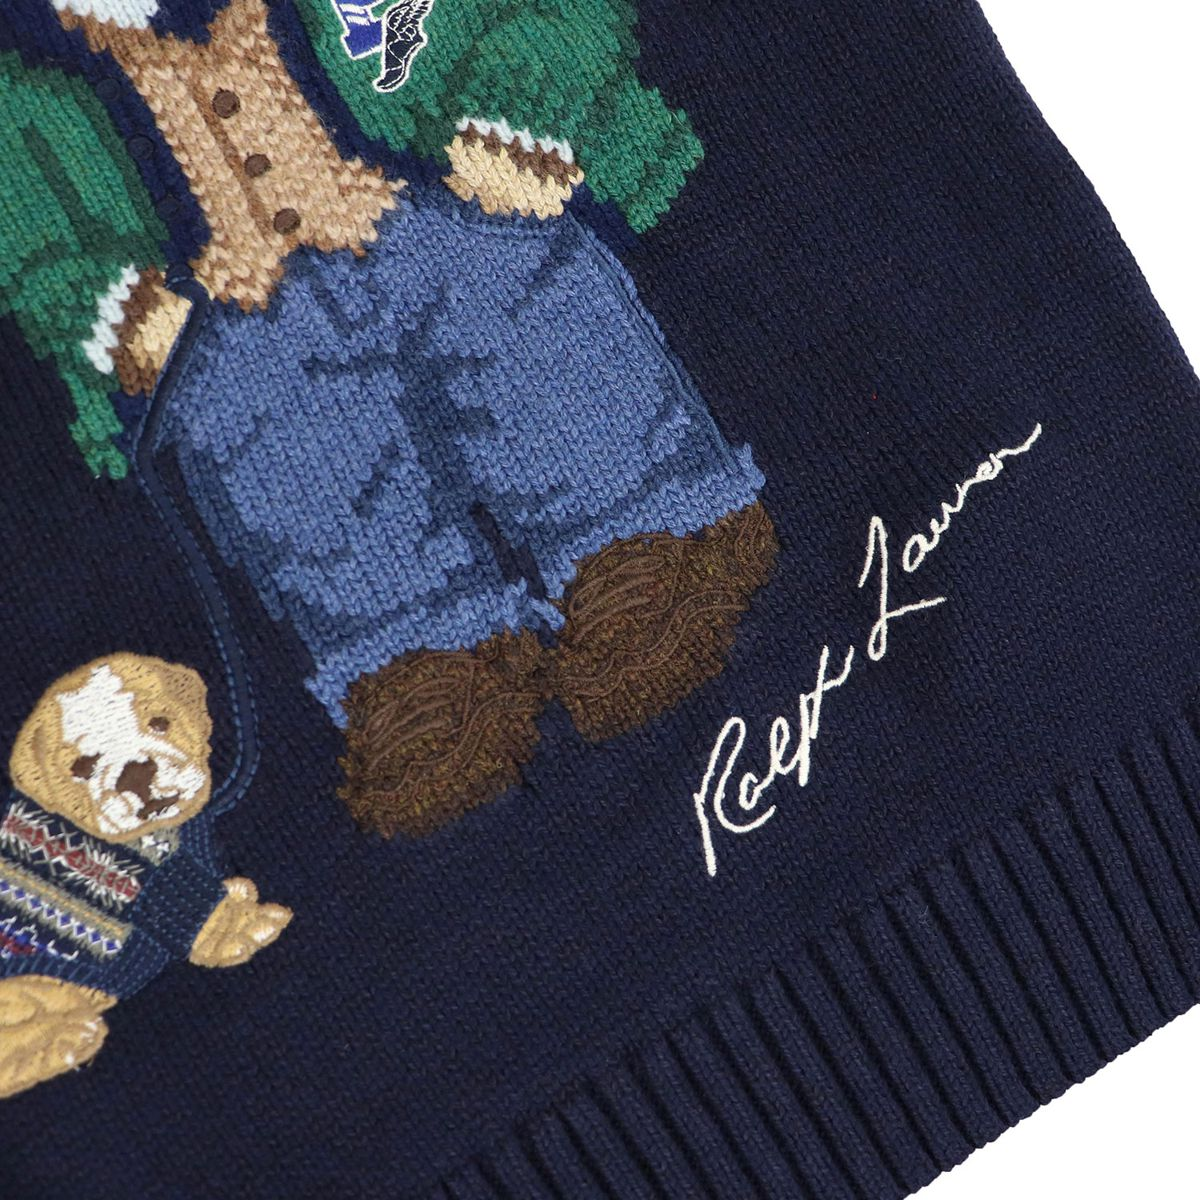 Crew-neck pullover in wool blend with bear print Blue Polo Ralph Lauren